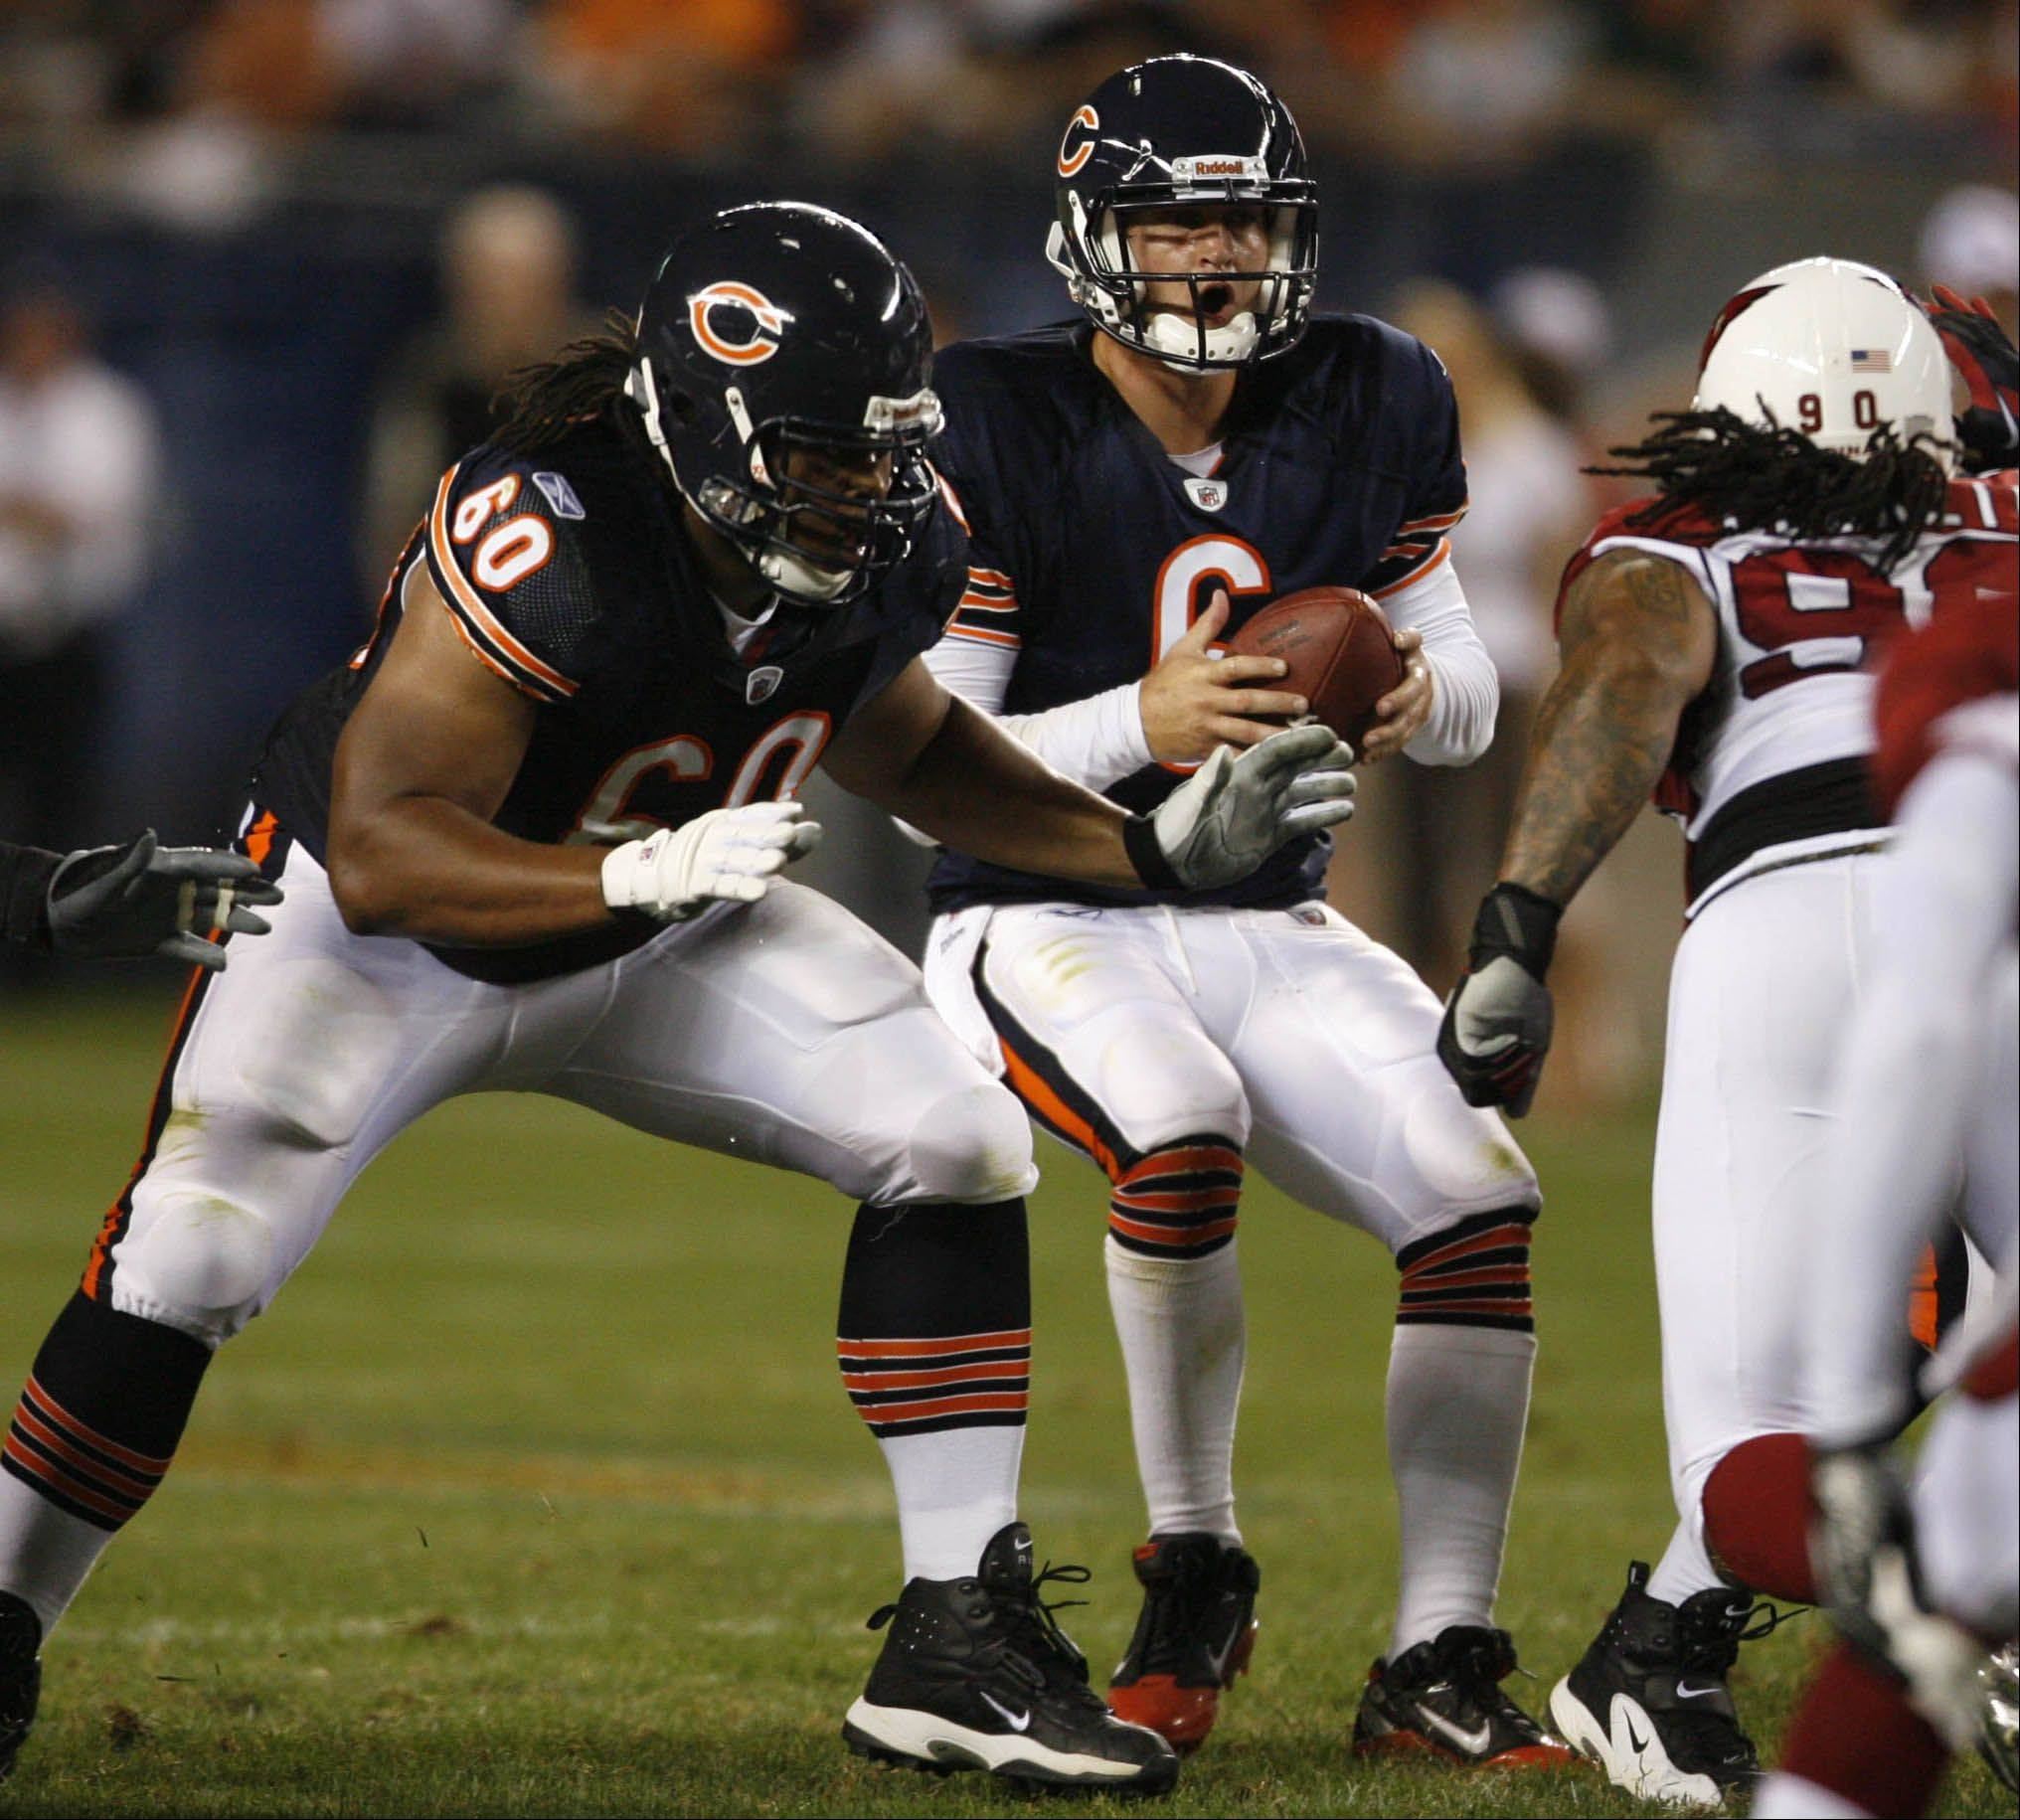 GEORGE LECLAIRE/gleclaire@dailyherald.com Lance Louis (60) is ready to return to the Bears lineup to help block for Jay Cutler.